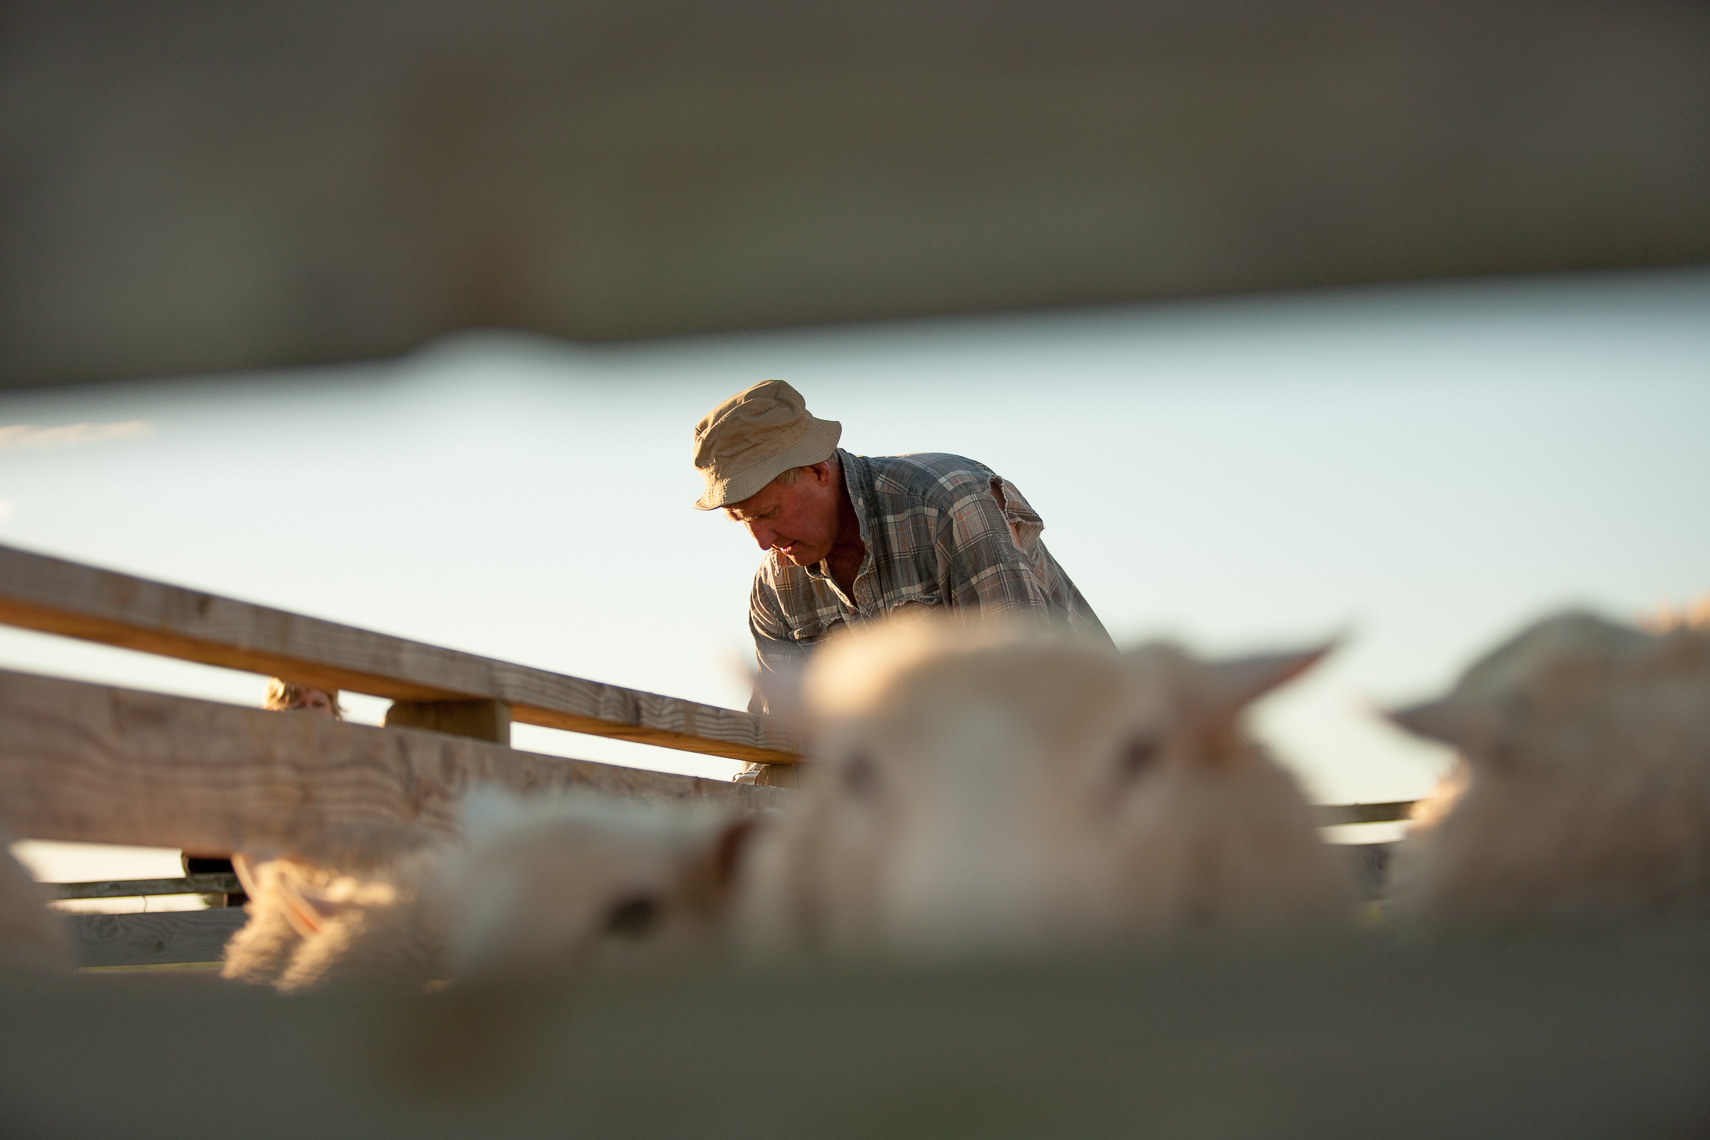 Bill French of Leelands lamb selecting stock in his yards by Paul Green Photographer